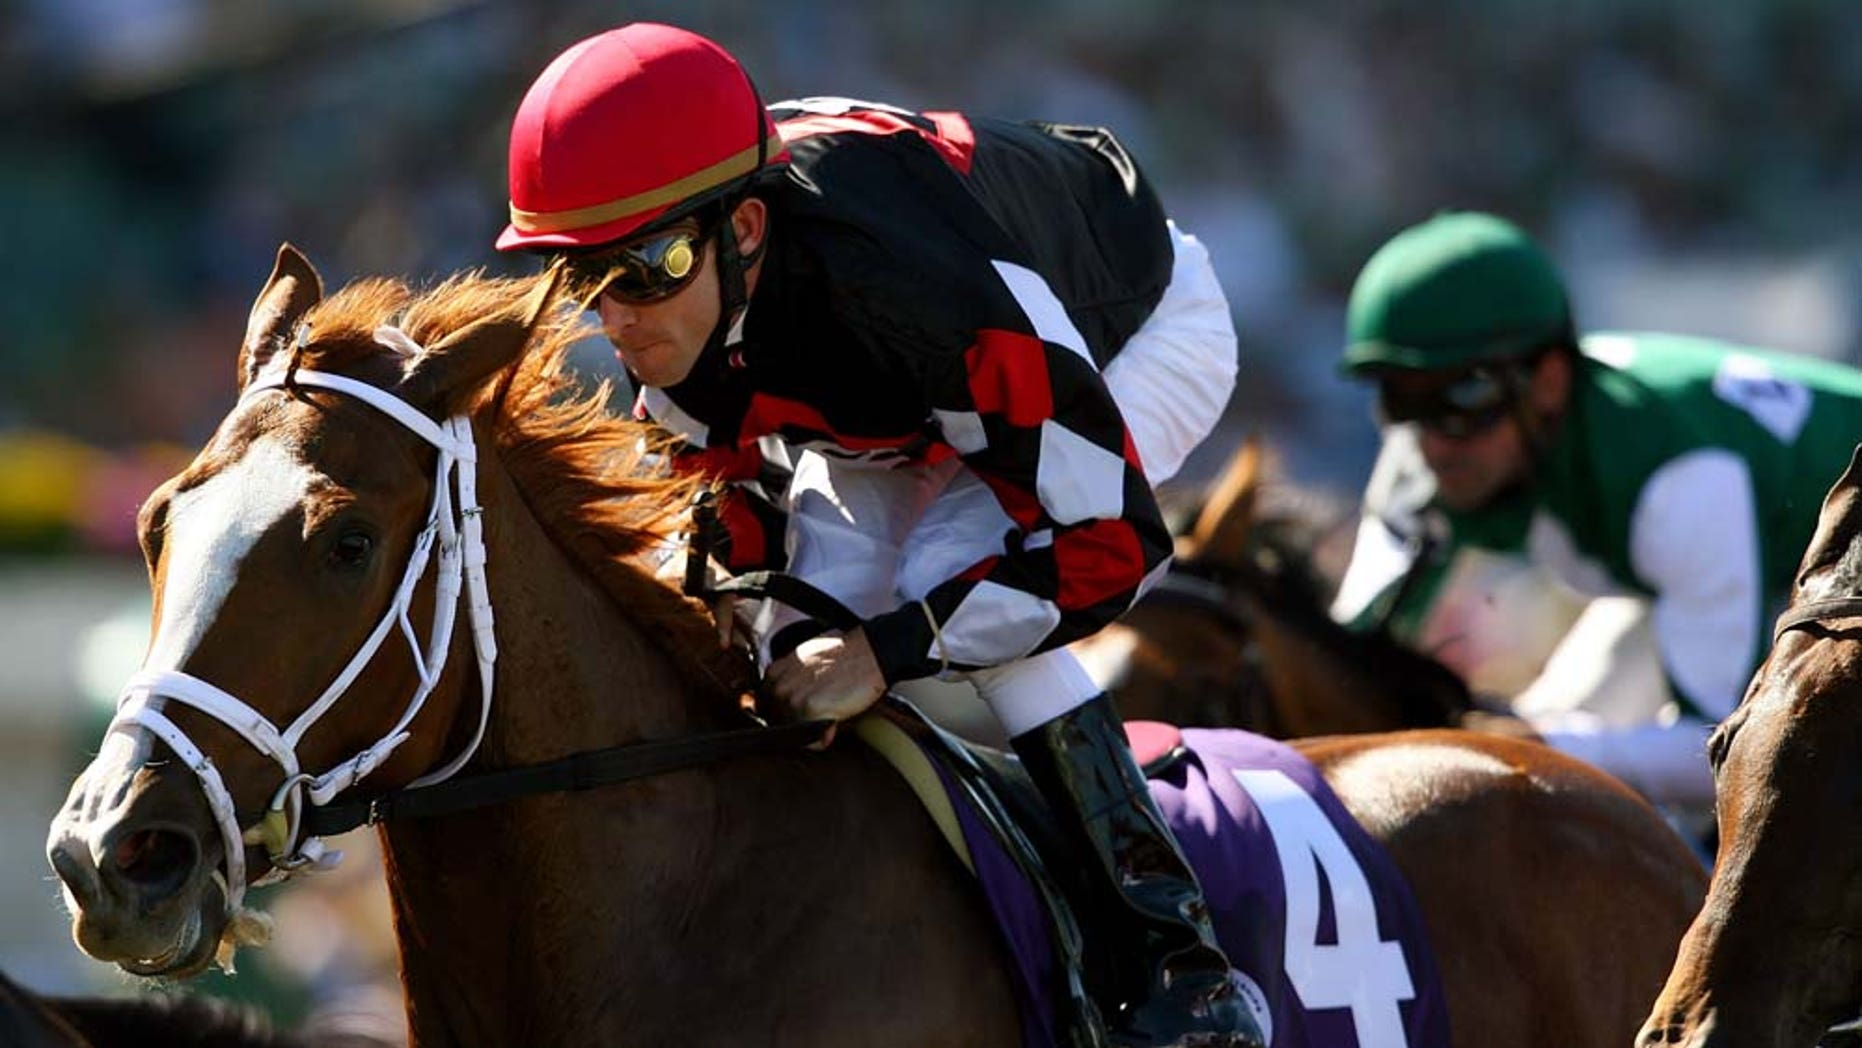 ARCADIA, CA - OCTOBER 24:  Jockey Ramon Dominguez rides Sky Diva in the Breeders' Cup Juvenile Fillies race during the Breeders' Cup World Championships at Santa Anita Park October 24, 2008 in Arcadia, California.  (Photo by Matthew Stockman/Getty Images)